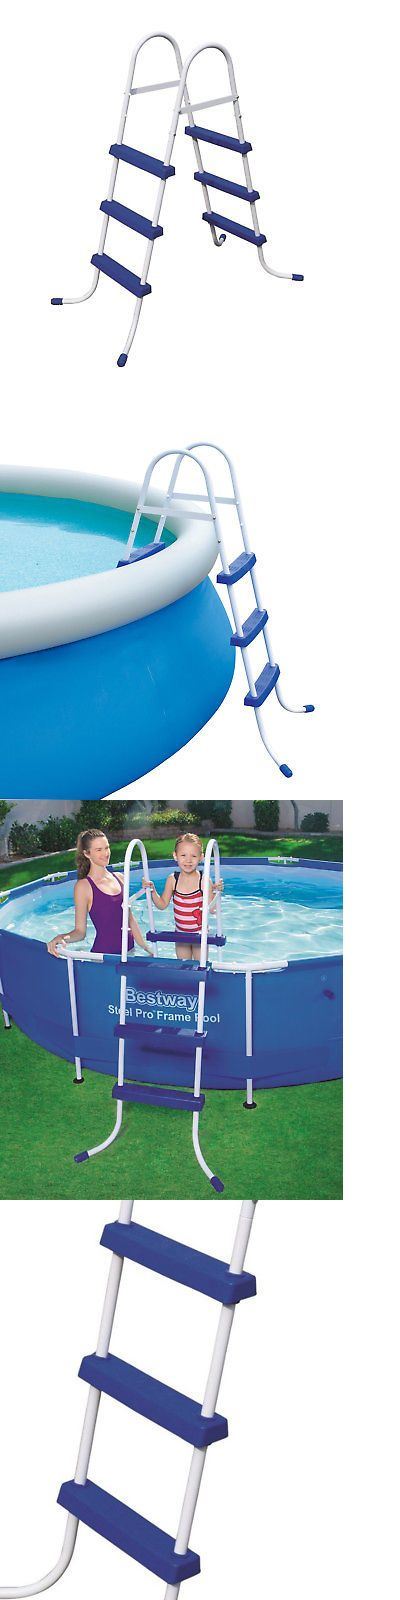 Pool Ladders And Steps 167847 Bestway 36 Inch Steel Above Ground Swimming Ladder No Slip 58334e It Now Only 81 99 On Ebay